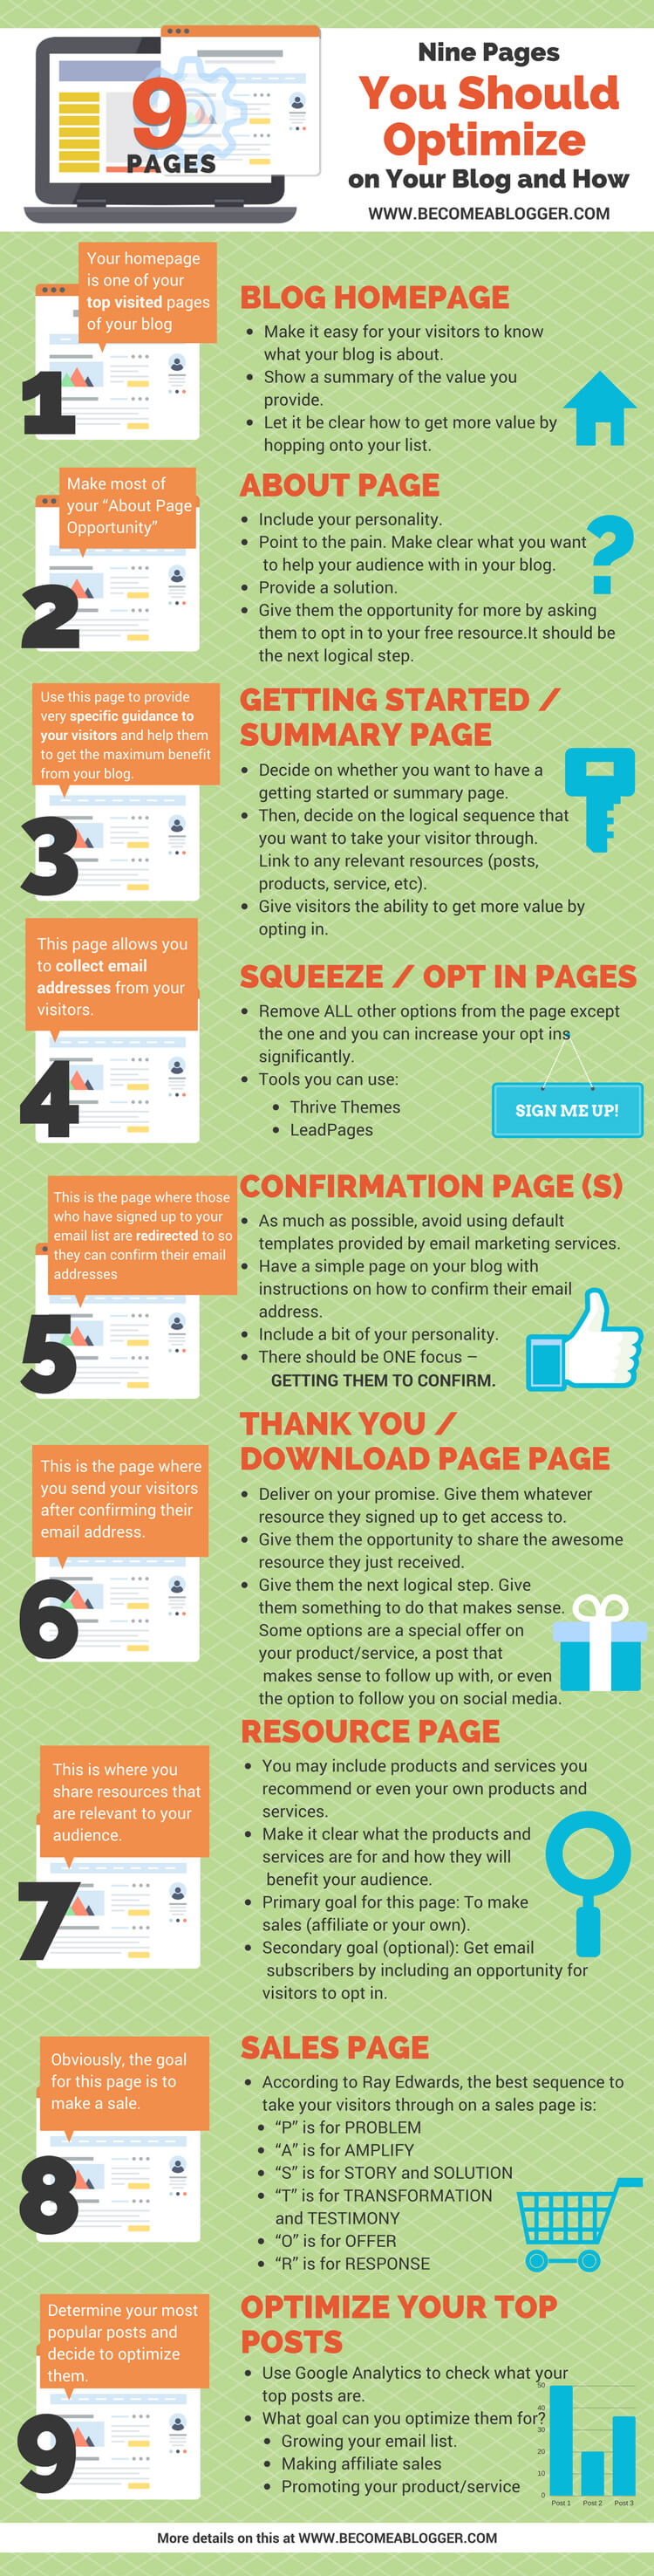 9 Pages You Should Optimize [Infographic]